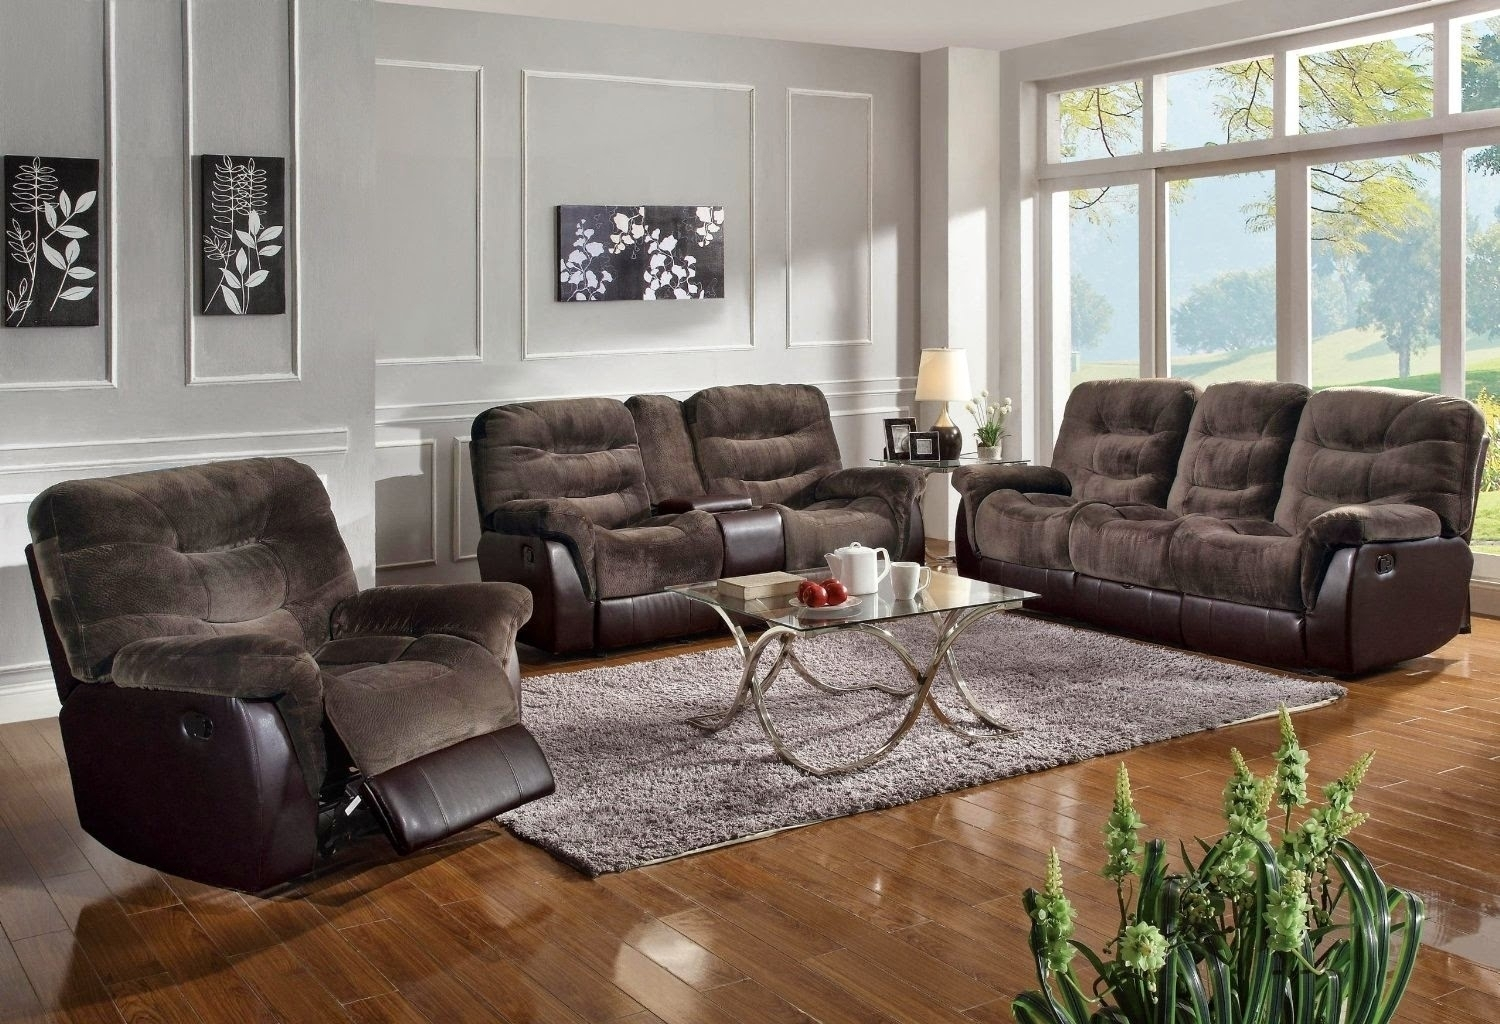 Strong Reclining Sectional Sofas For Small Spaces Furniture | Www With Sectional Sofas With Recliners For Small Spaces (View 4 of 10)